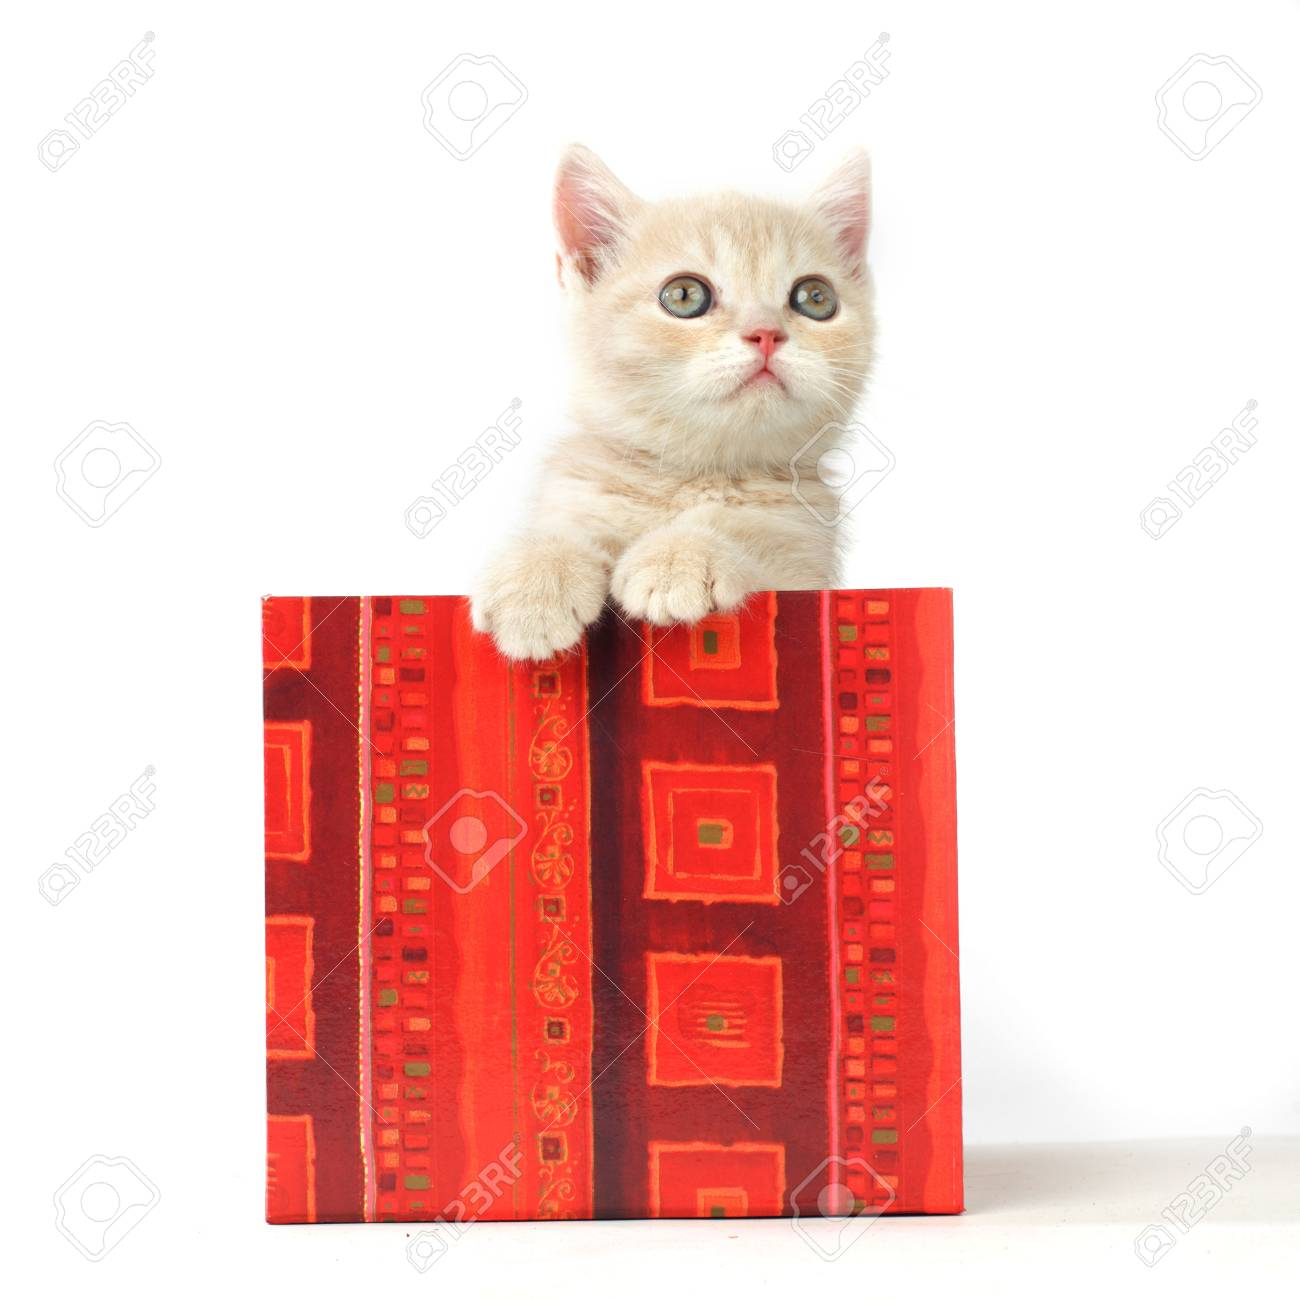 cat in gift box isolated on white background Stock Photo - 9174747